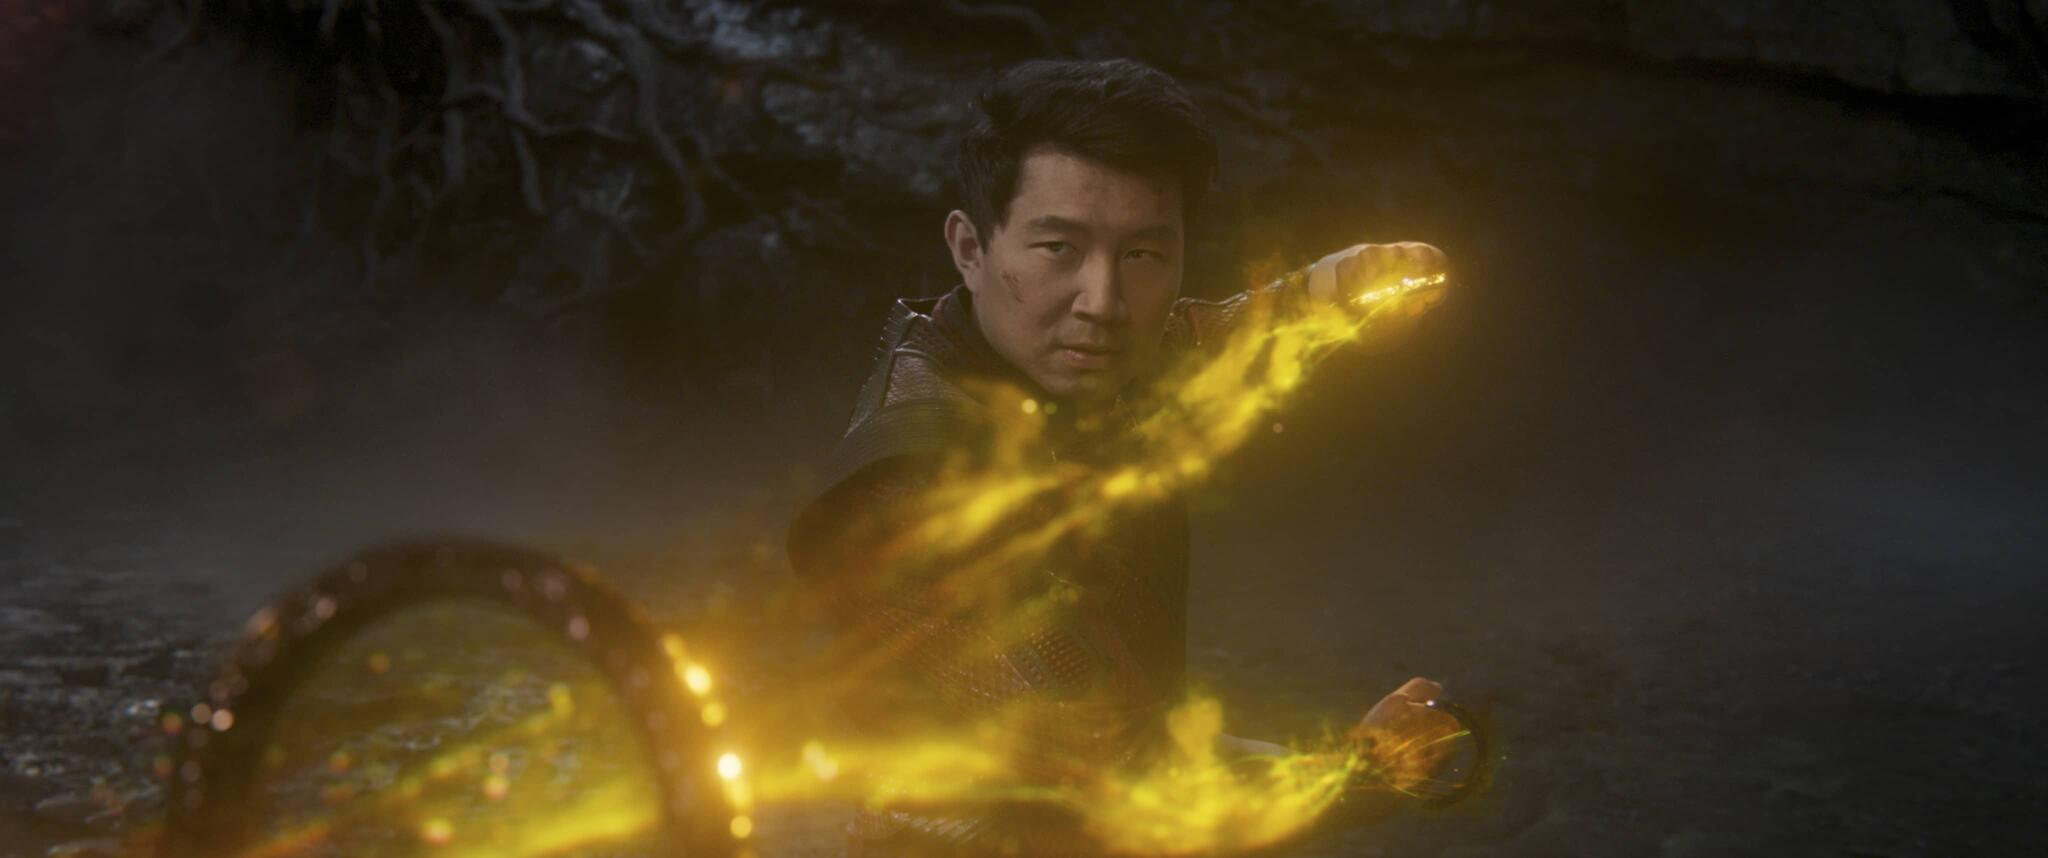 A still from 'Shang-Chi' of Shang-Chi using the Ten Rings against Wenwu